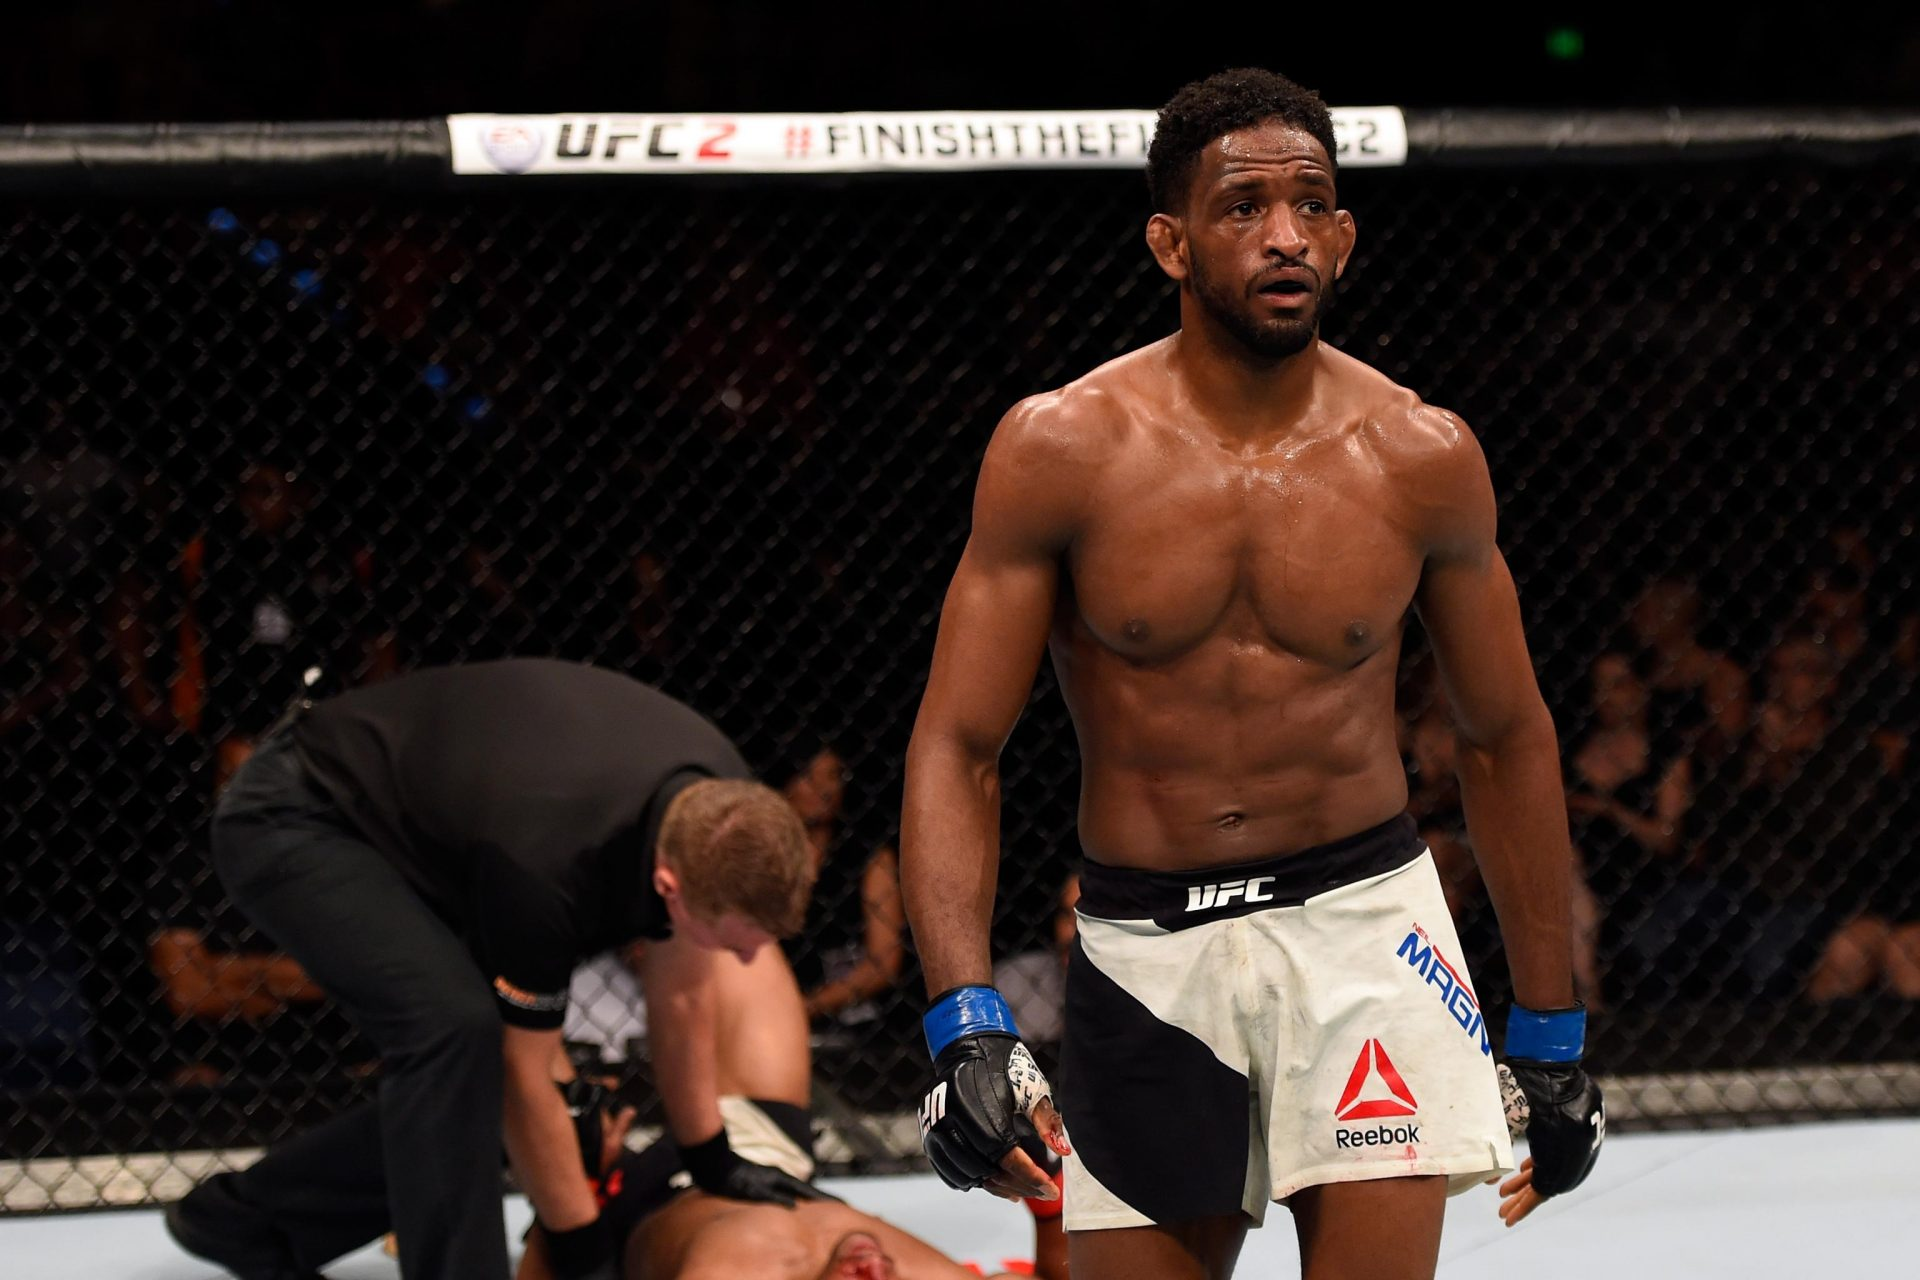 Neil Magny gets win over Robbie Lawler